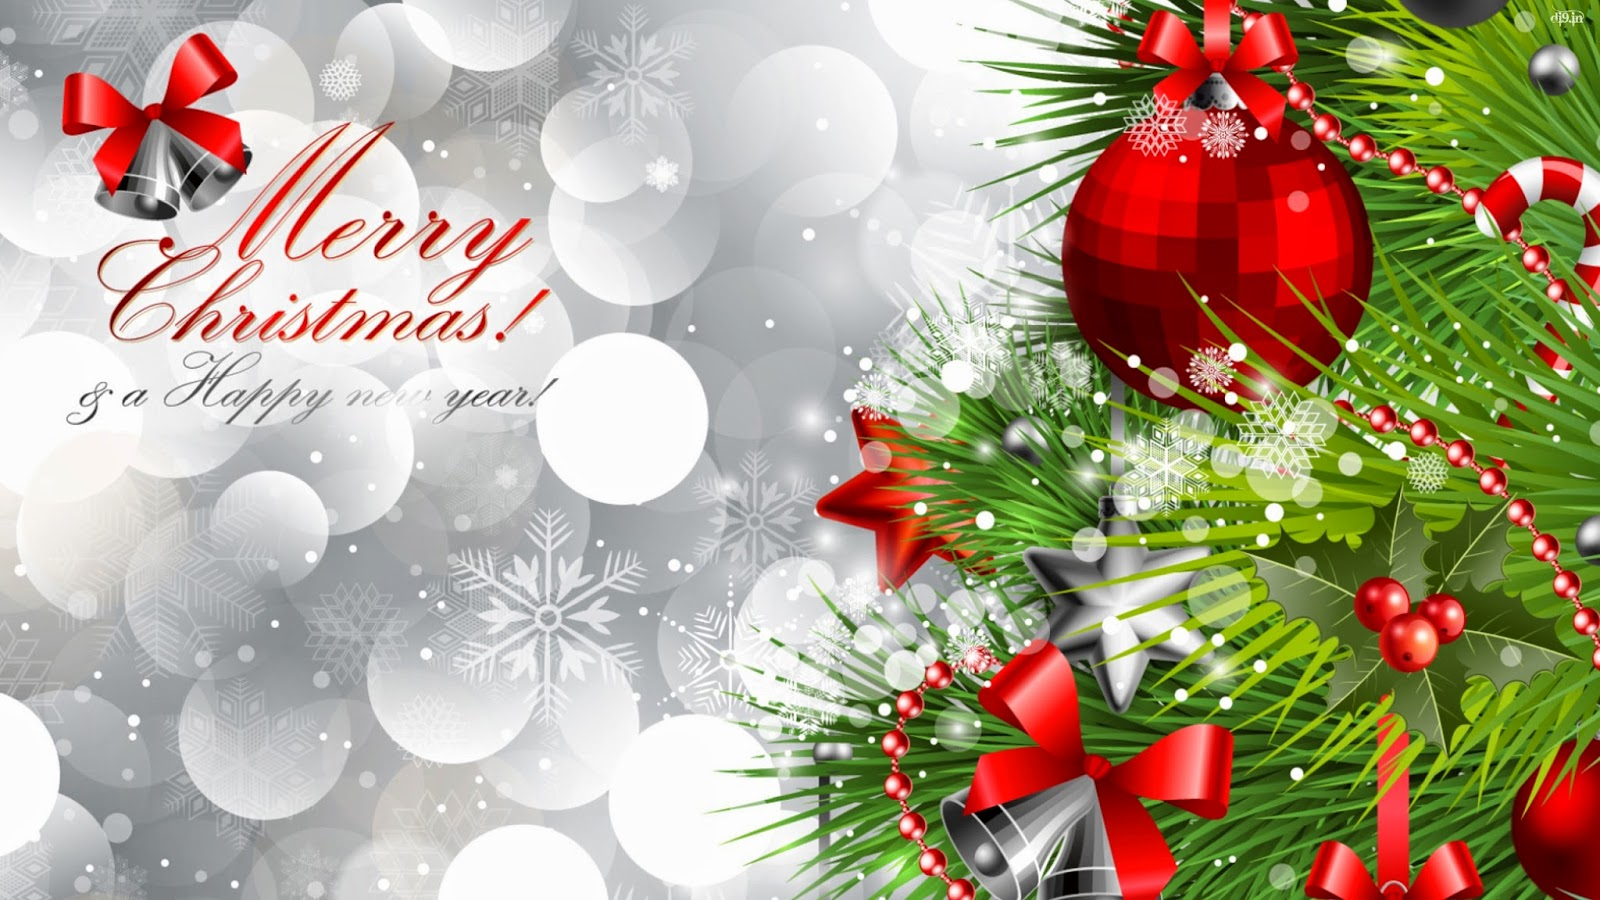 Screen Backgrounds Full Christmas Desktop